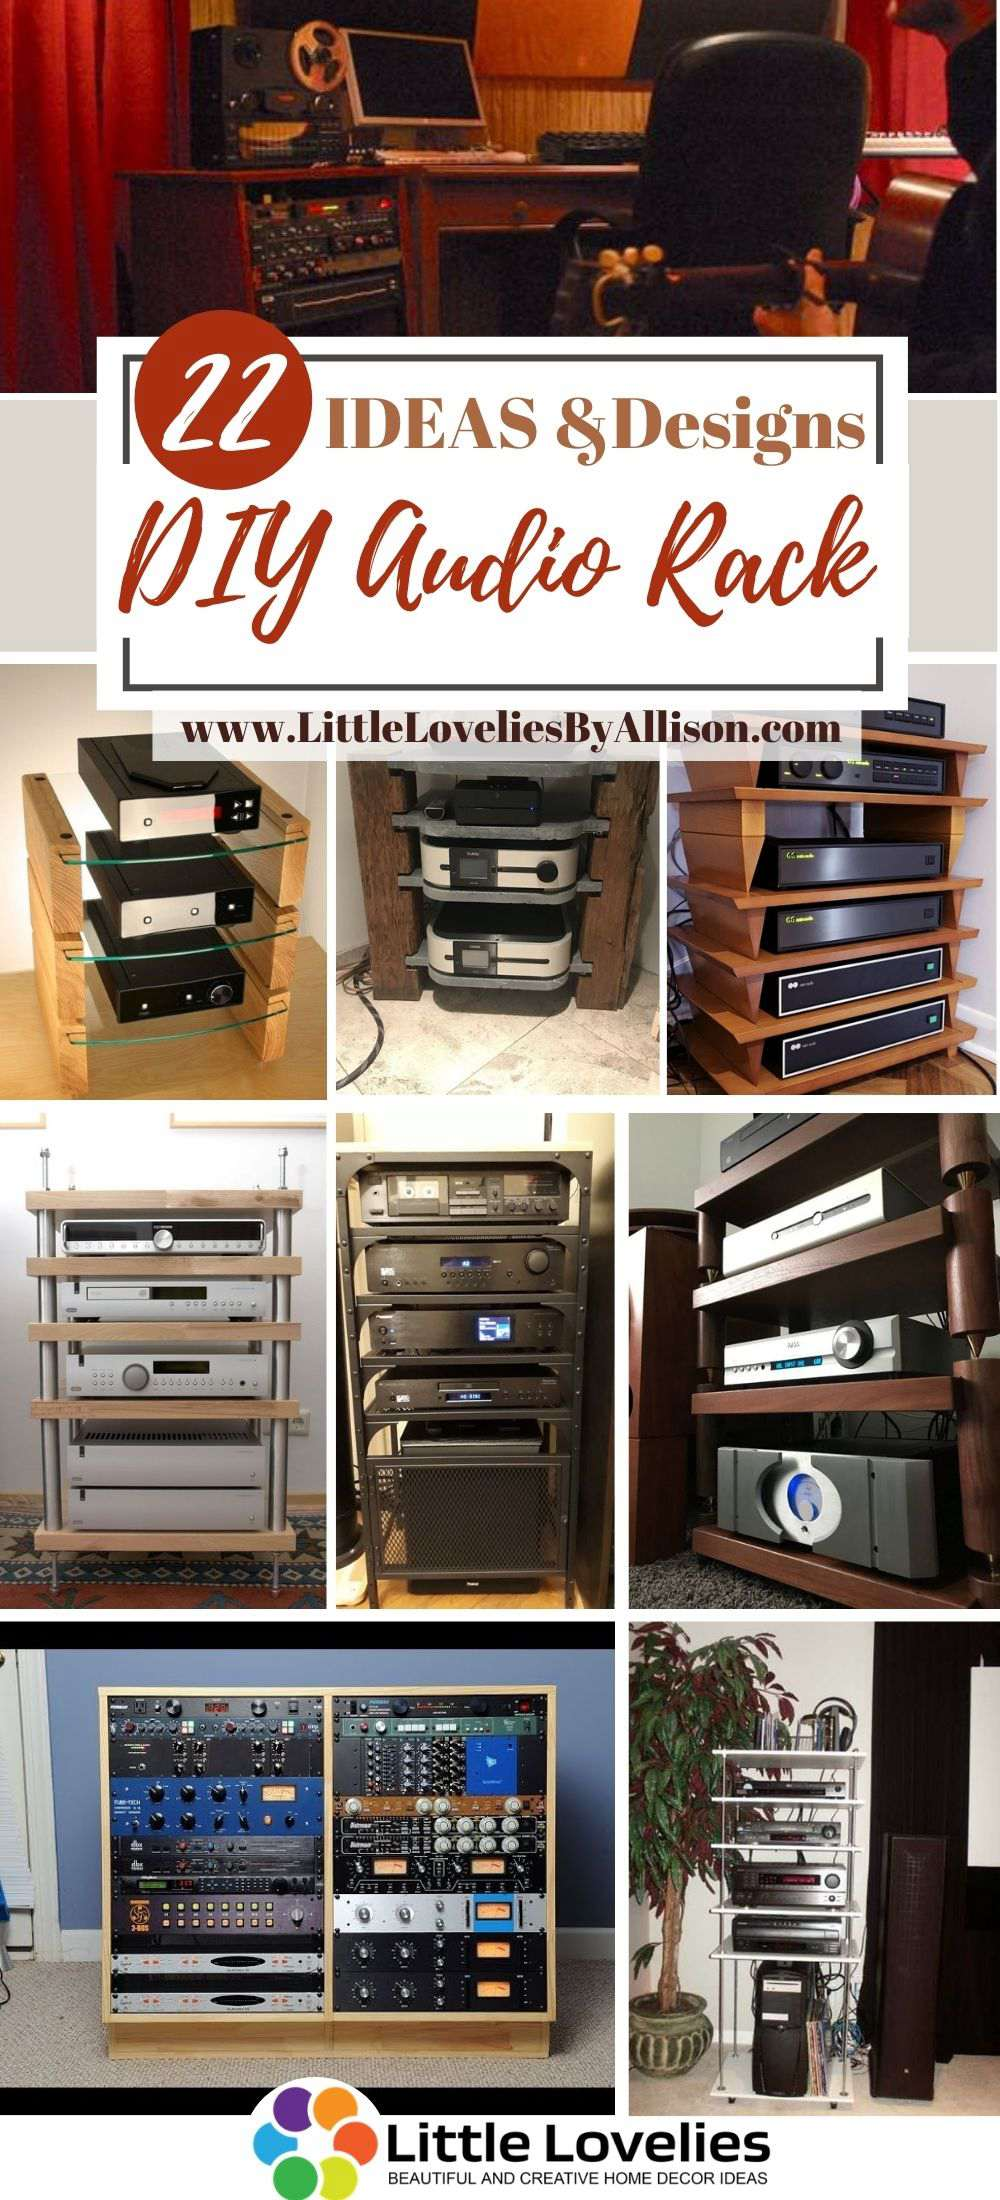 22 diy audio rack projects and ideas